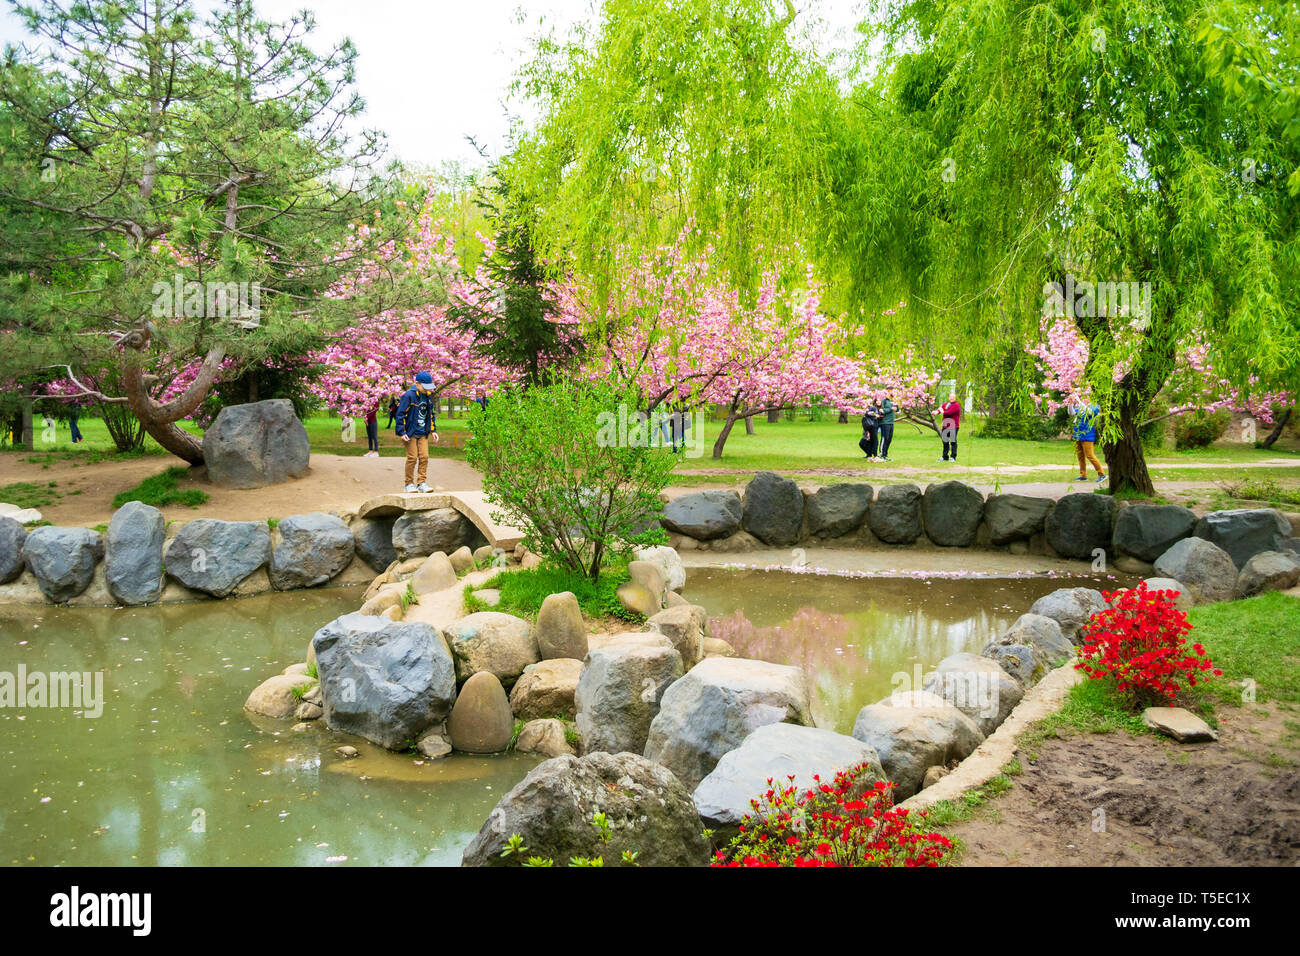 Bucharest, Romania - April 17, 2019: The Japanese Garden in Herastrau Park was brought back to life, in a joint effort by the Embassy of Japan, Buchar - Stock Image